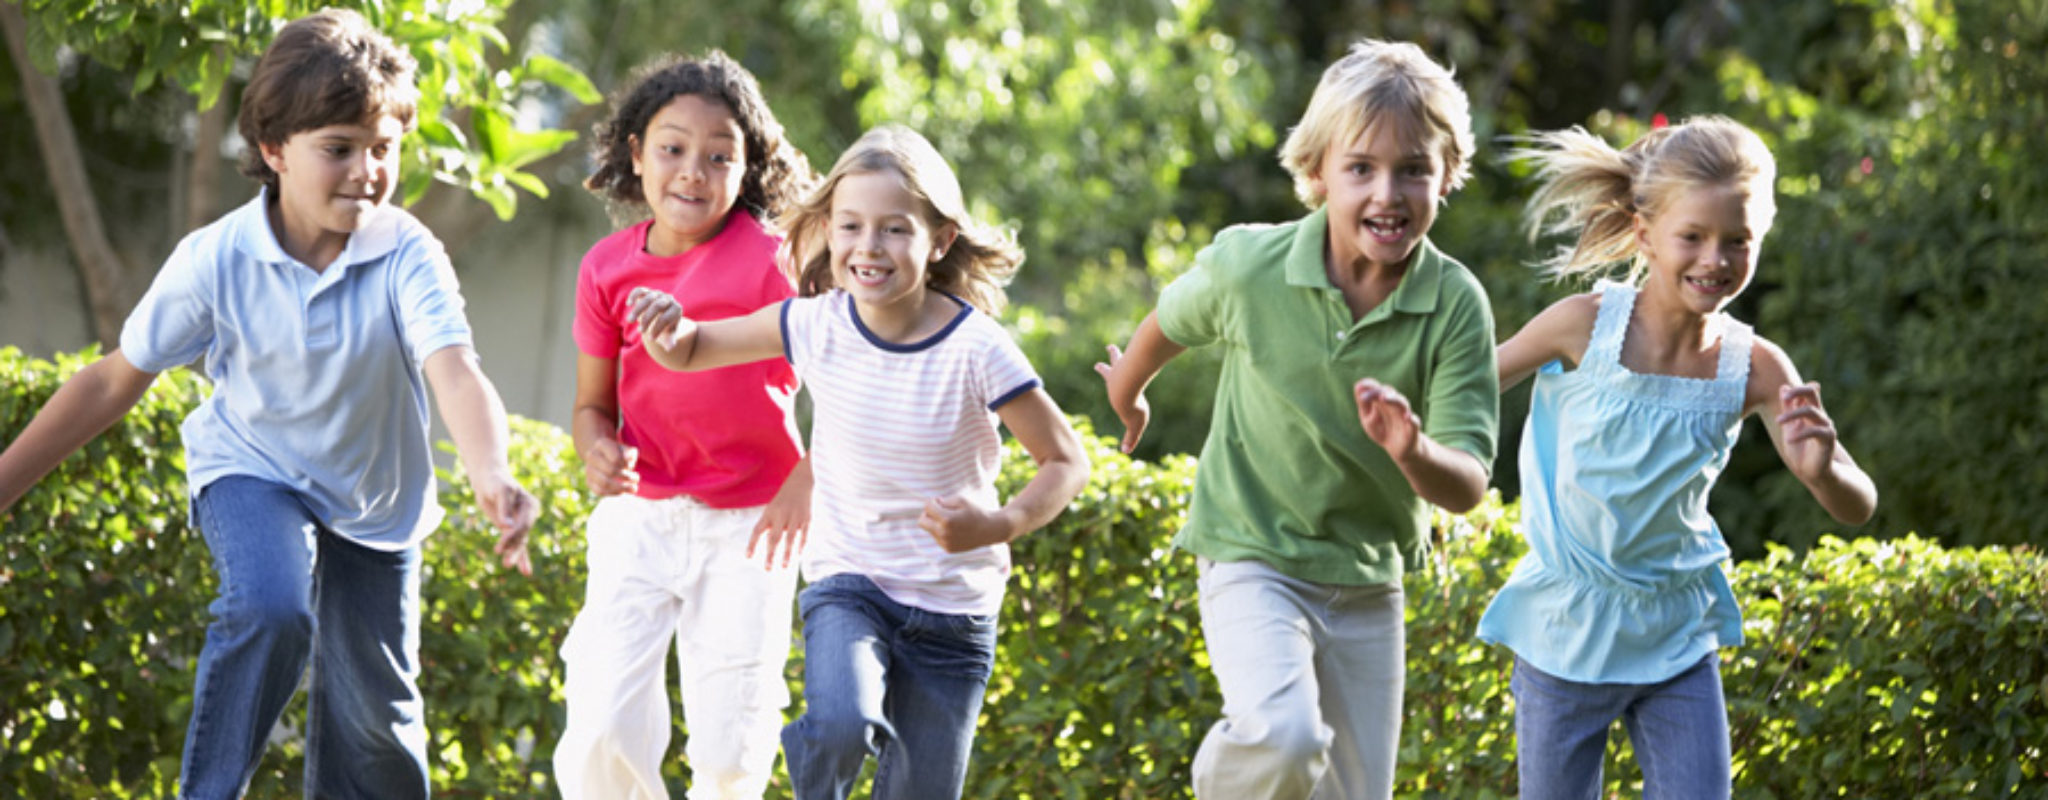 Promoting a Healthy Weight: What Can Parents Do?, by Danielle Haley, MPH, Powered by Nemours Children's Health System